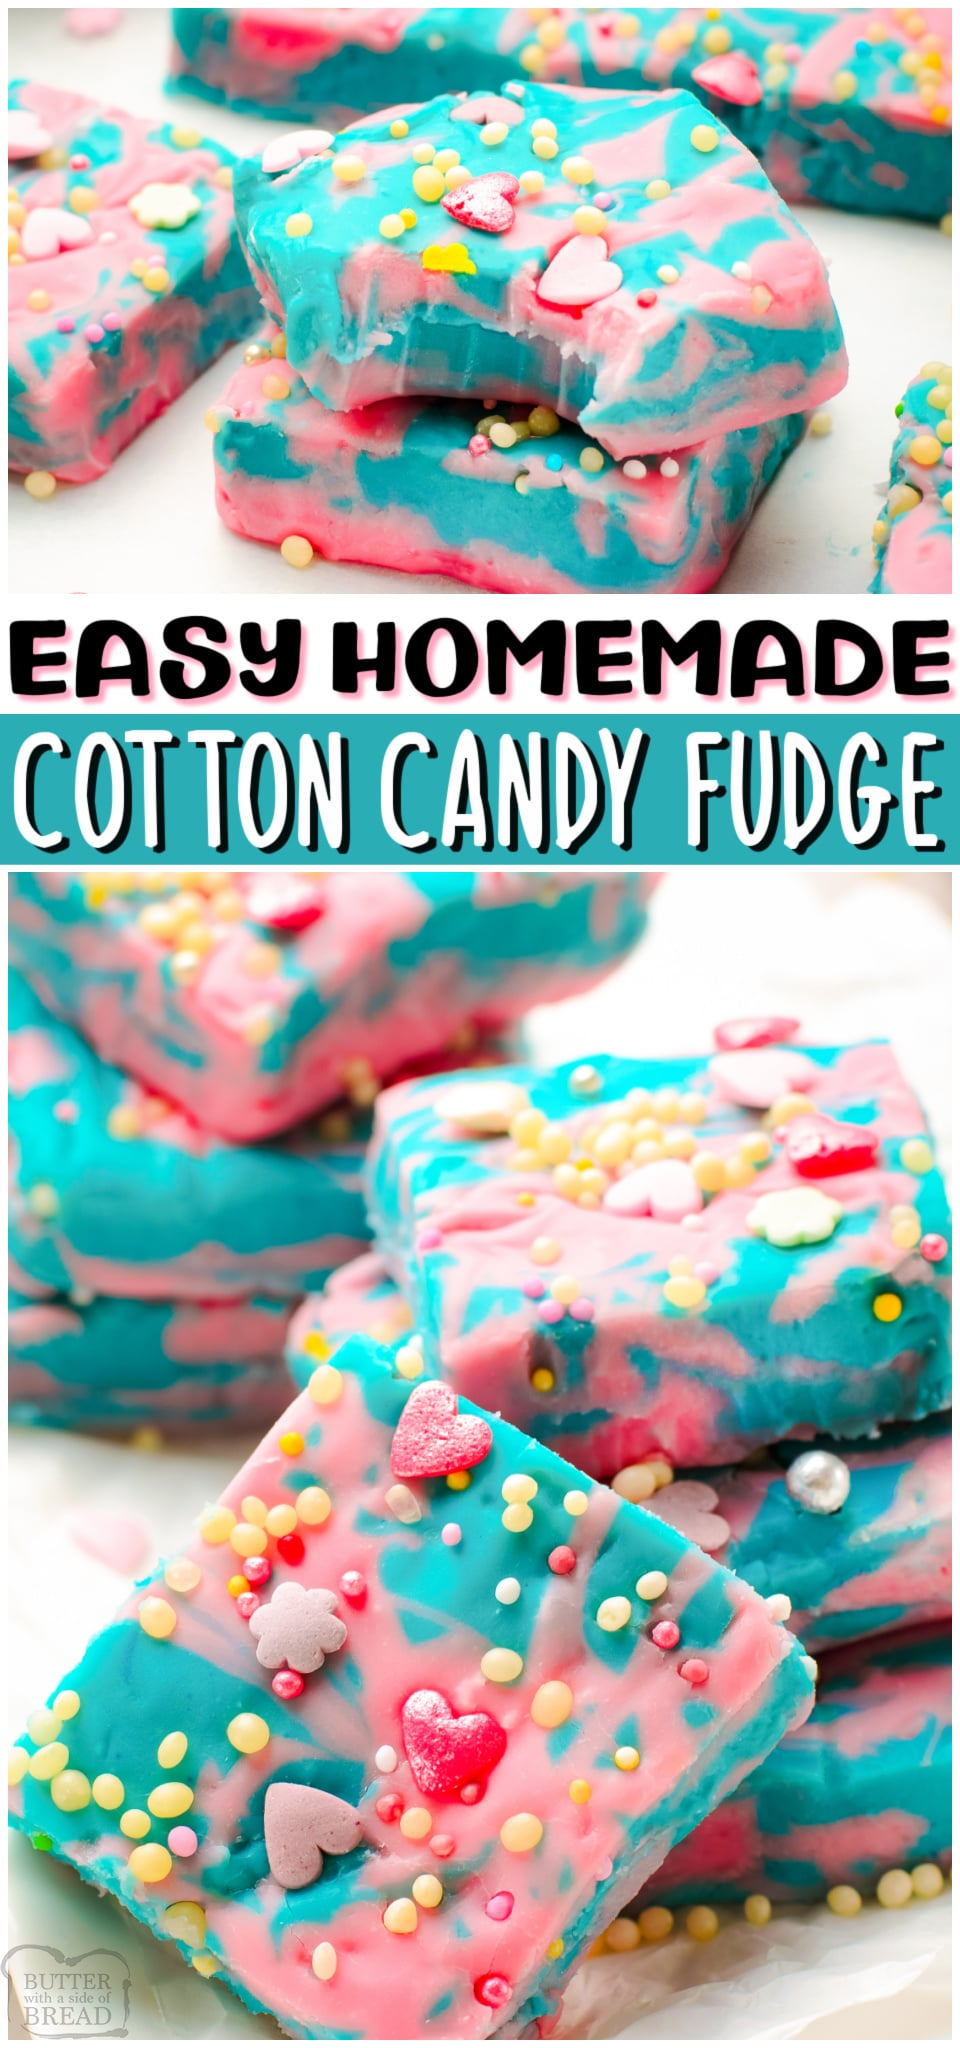 Cotton candy fudge made fun with white chocolate chips and condensed milk! Swirled fudge recipe with cotton candy flavor and topped with festive sprinkles! #fudge #cottoncandy #dessert #candy #easyrecipe from BUTTER WITH A SIDE OF BREAD